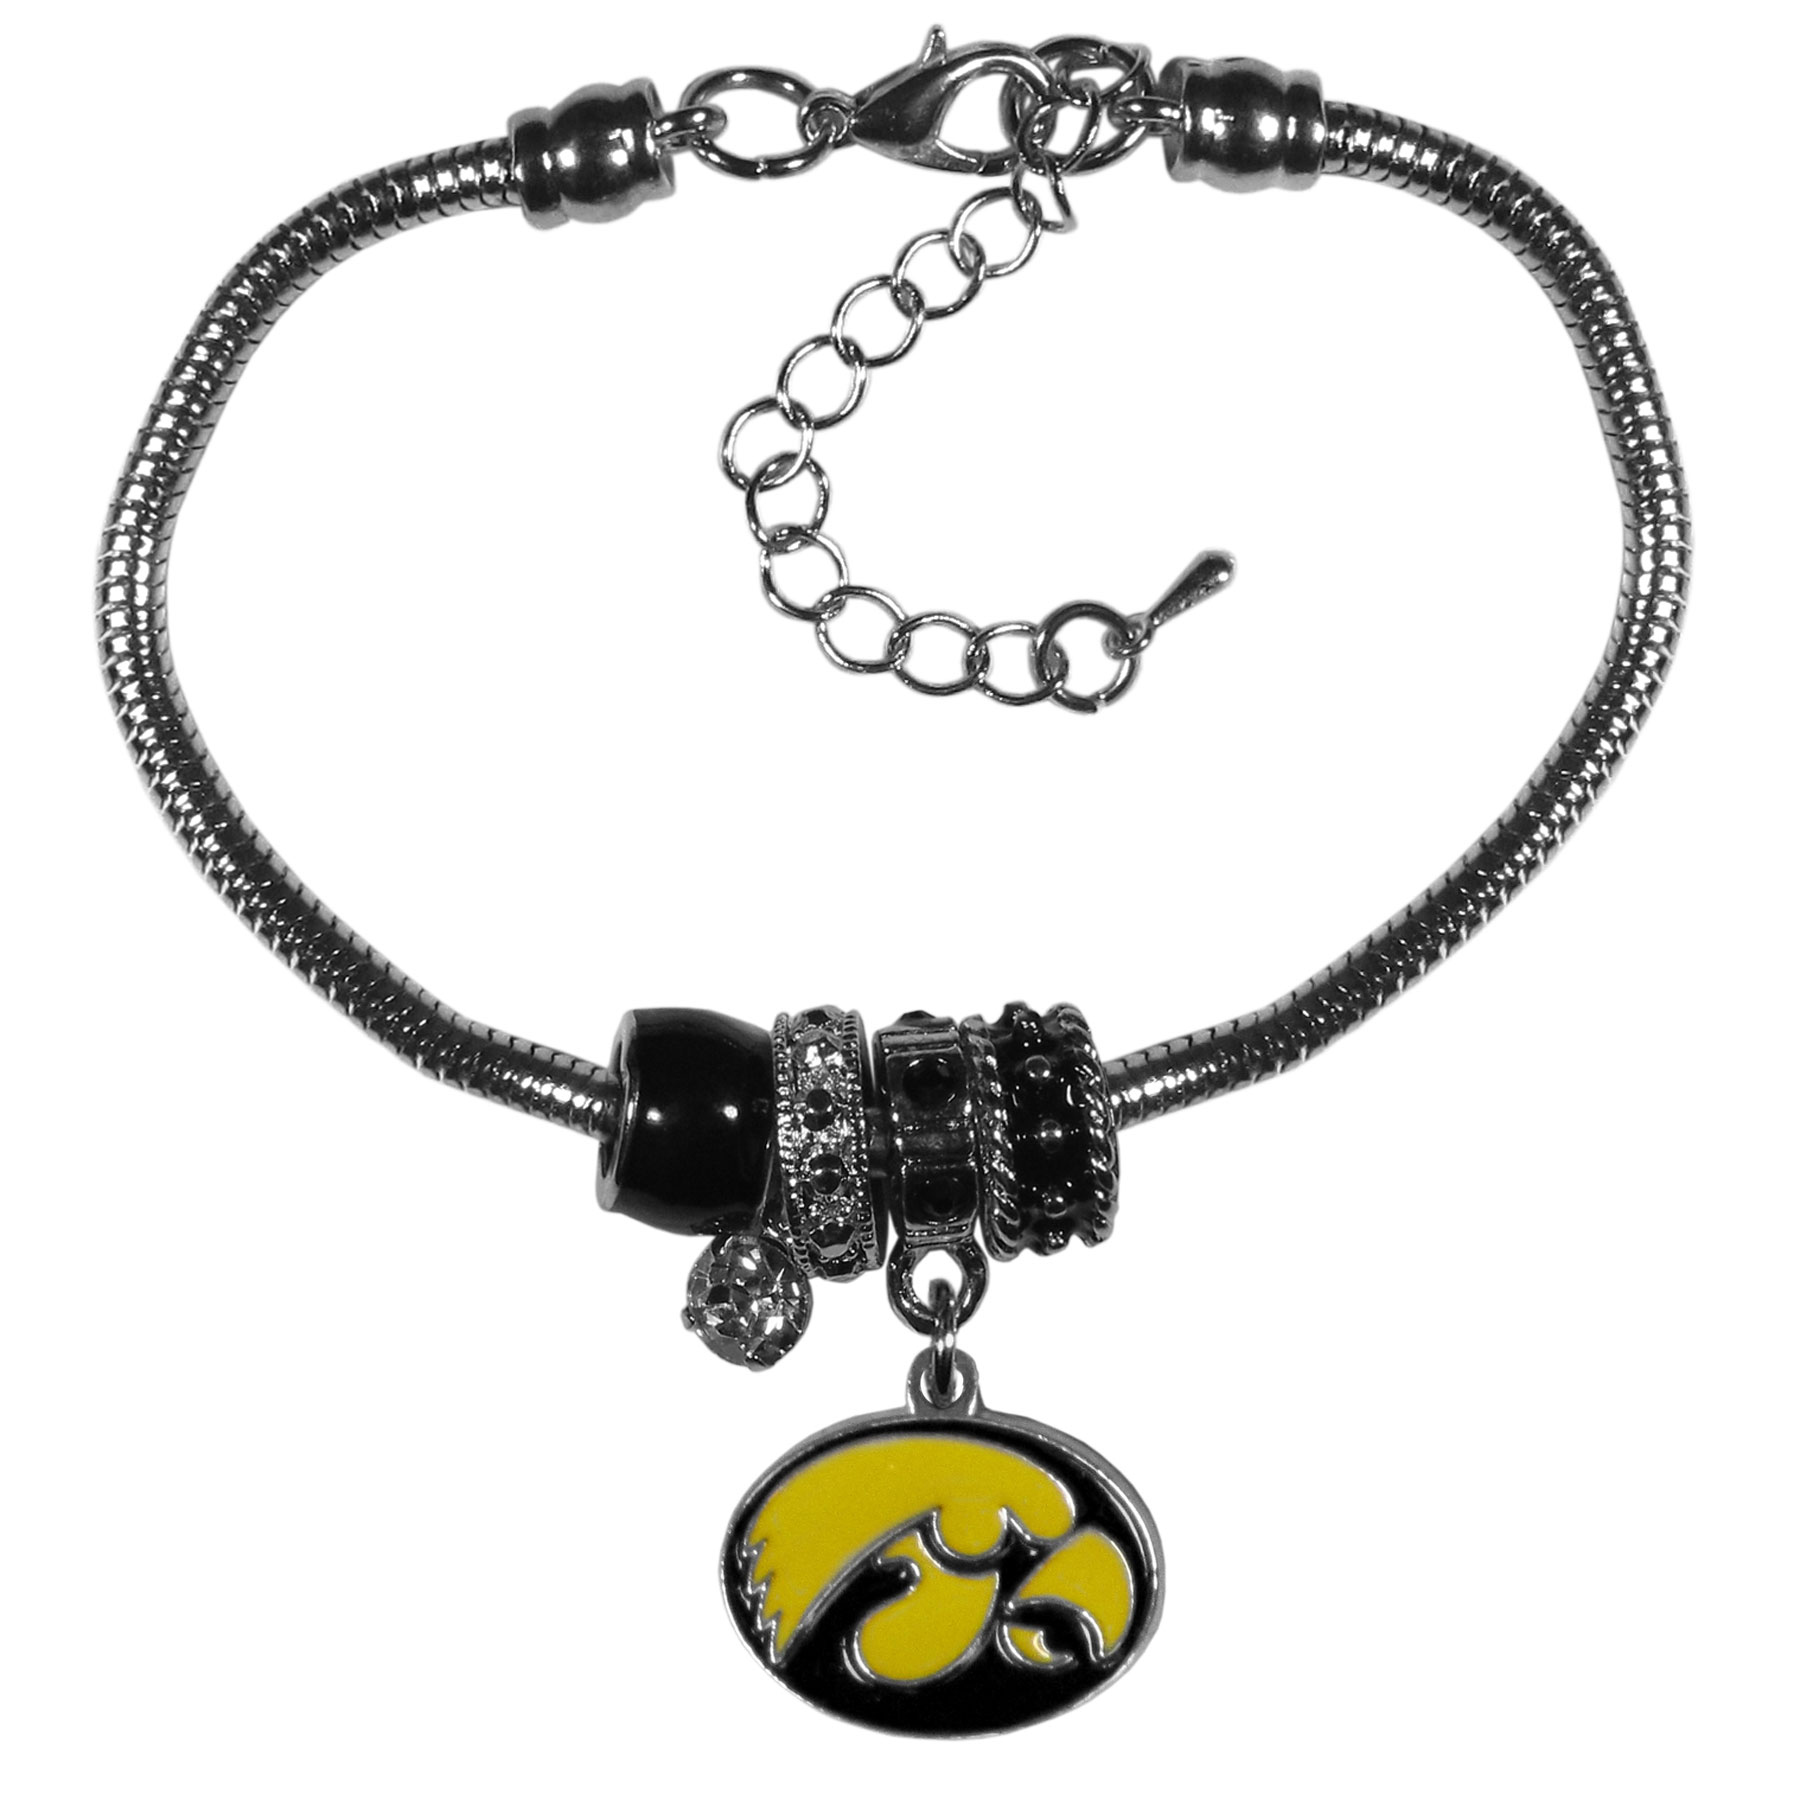 Iowa Hawkeyes Euro Bead Bracelet - We have combined the wildly popular Euro style beads with your favorite team to create our  Iowa Hawkeyes bead bracelet. The 7.5 inch snake chain with 2 inch extender features 4 Euro beads with enameled team colors and rhinestone accents with a high polish, nickel free charm and rhinestone charm. Perfect way to show off your team pride.